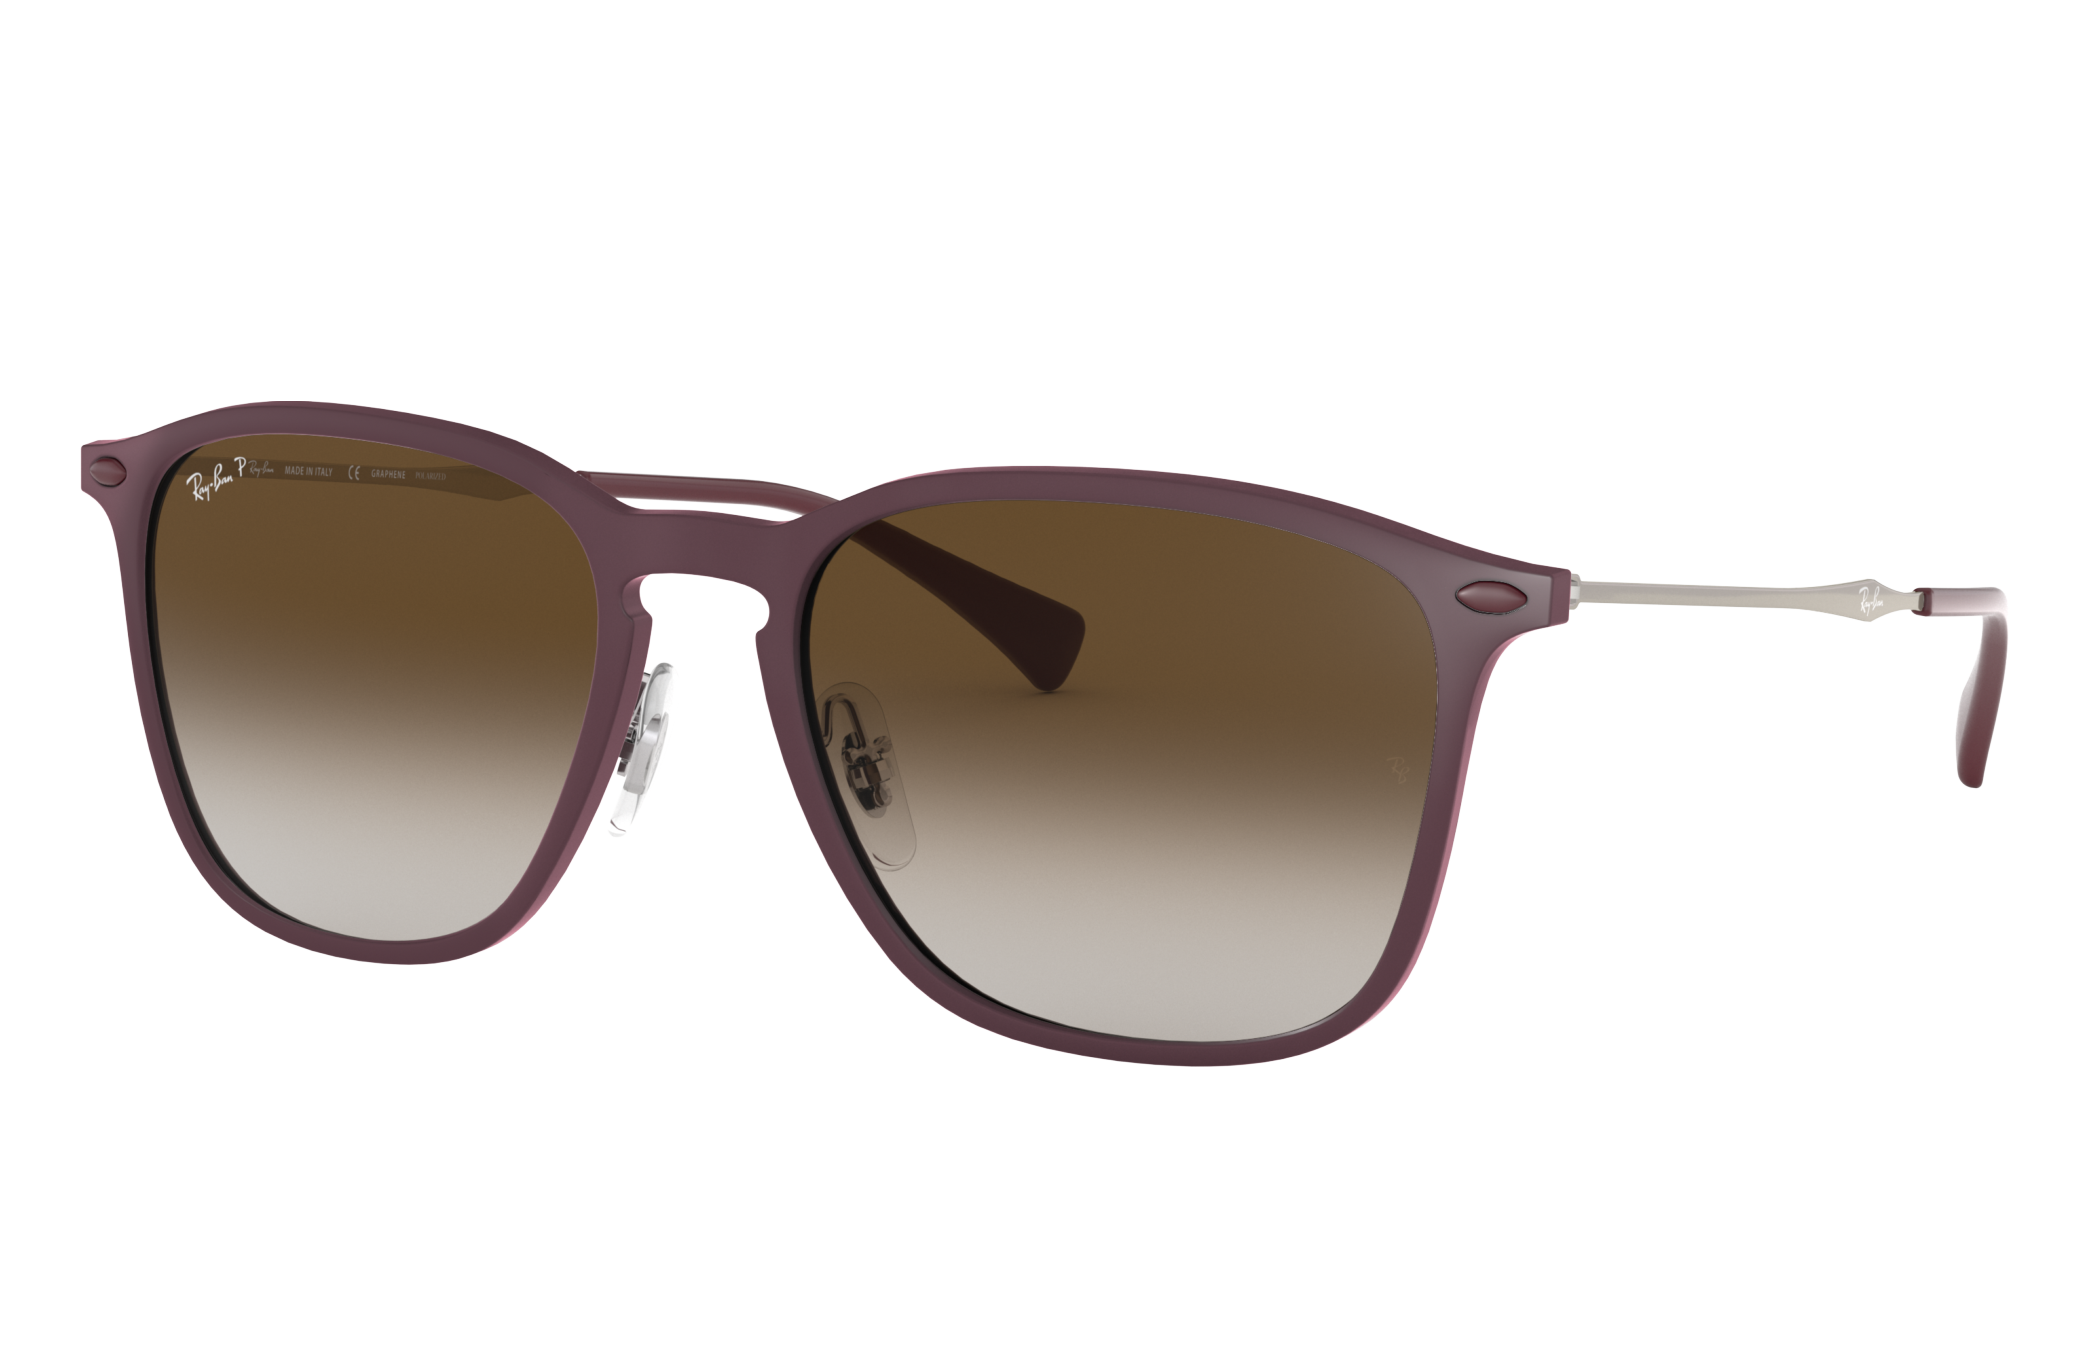 Ray-Ban Rb8353 Silver, Polarized Brown Lenses - RB8353